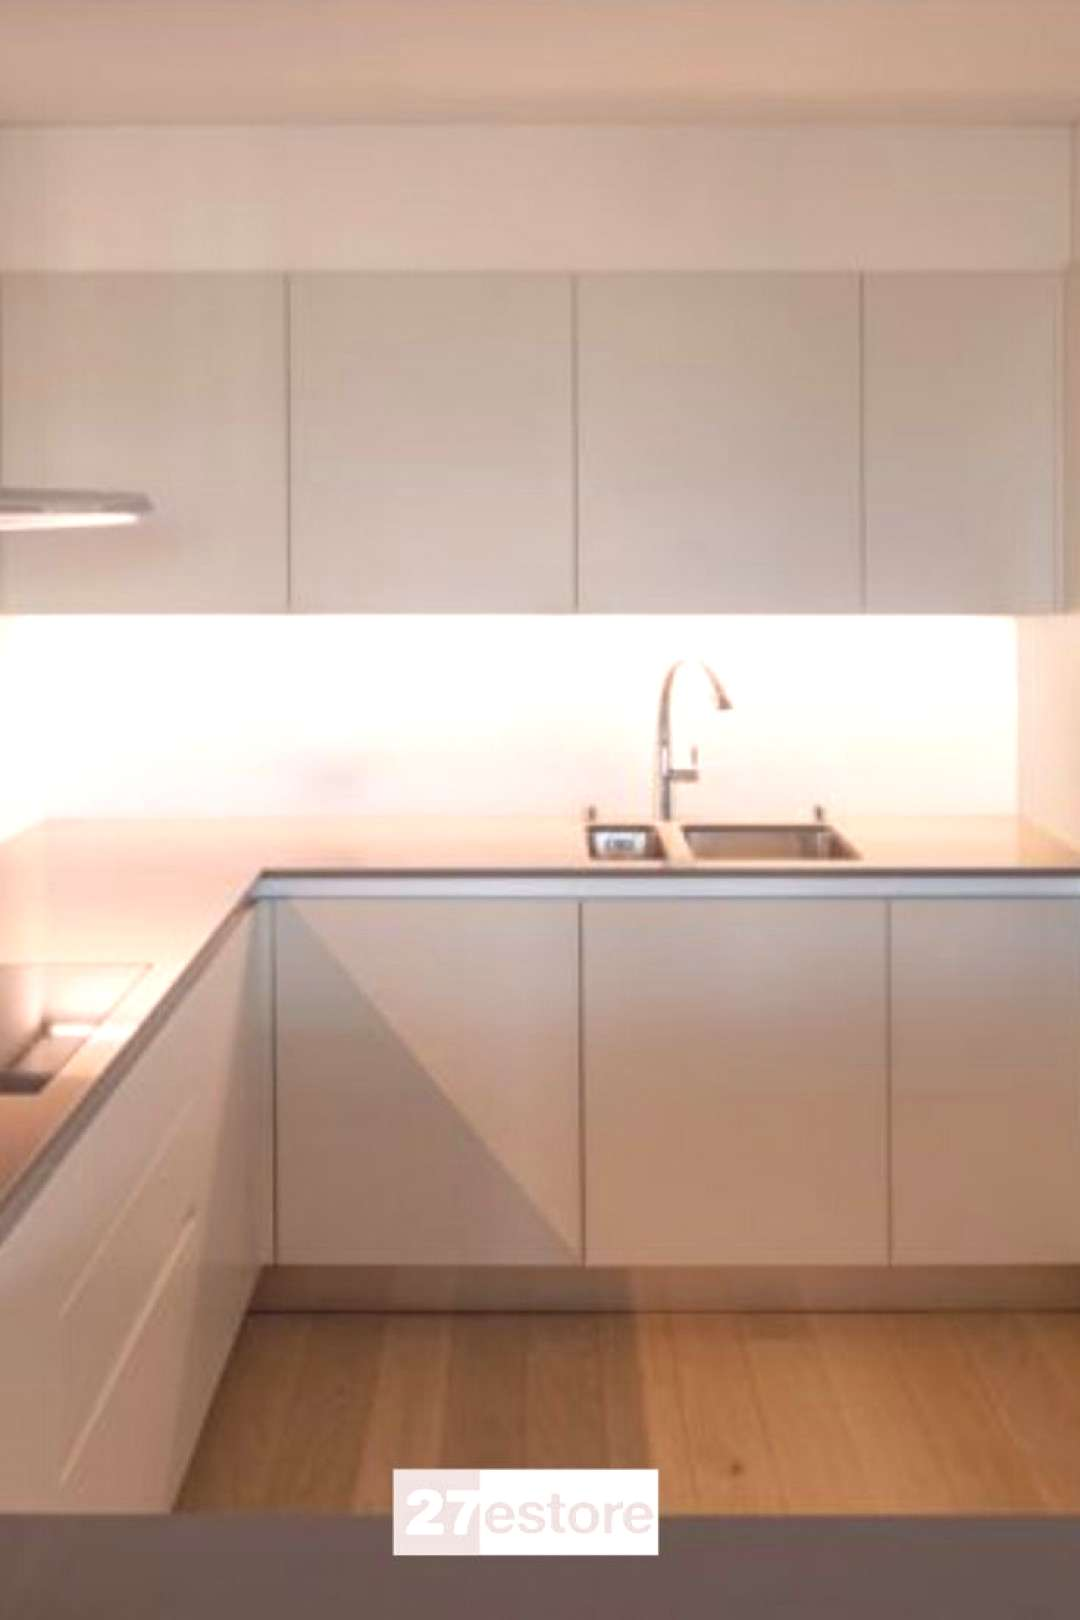 ACRYLIC MATTE SILK cabinets Our Acrylic Matte Silk cabinet doors have a soft, neutral color that wo